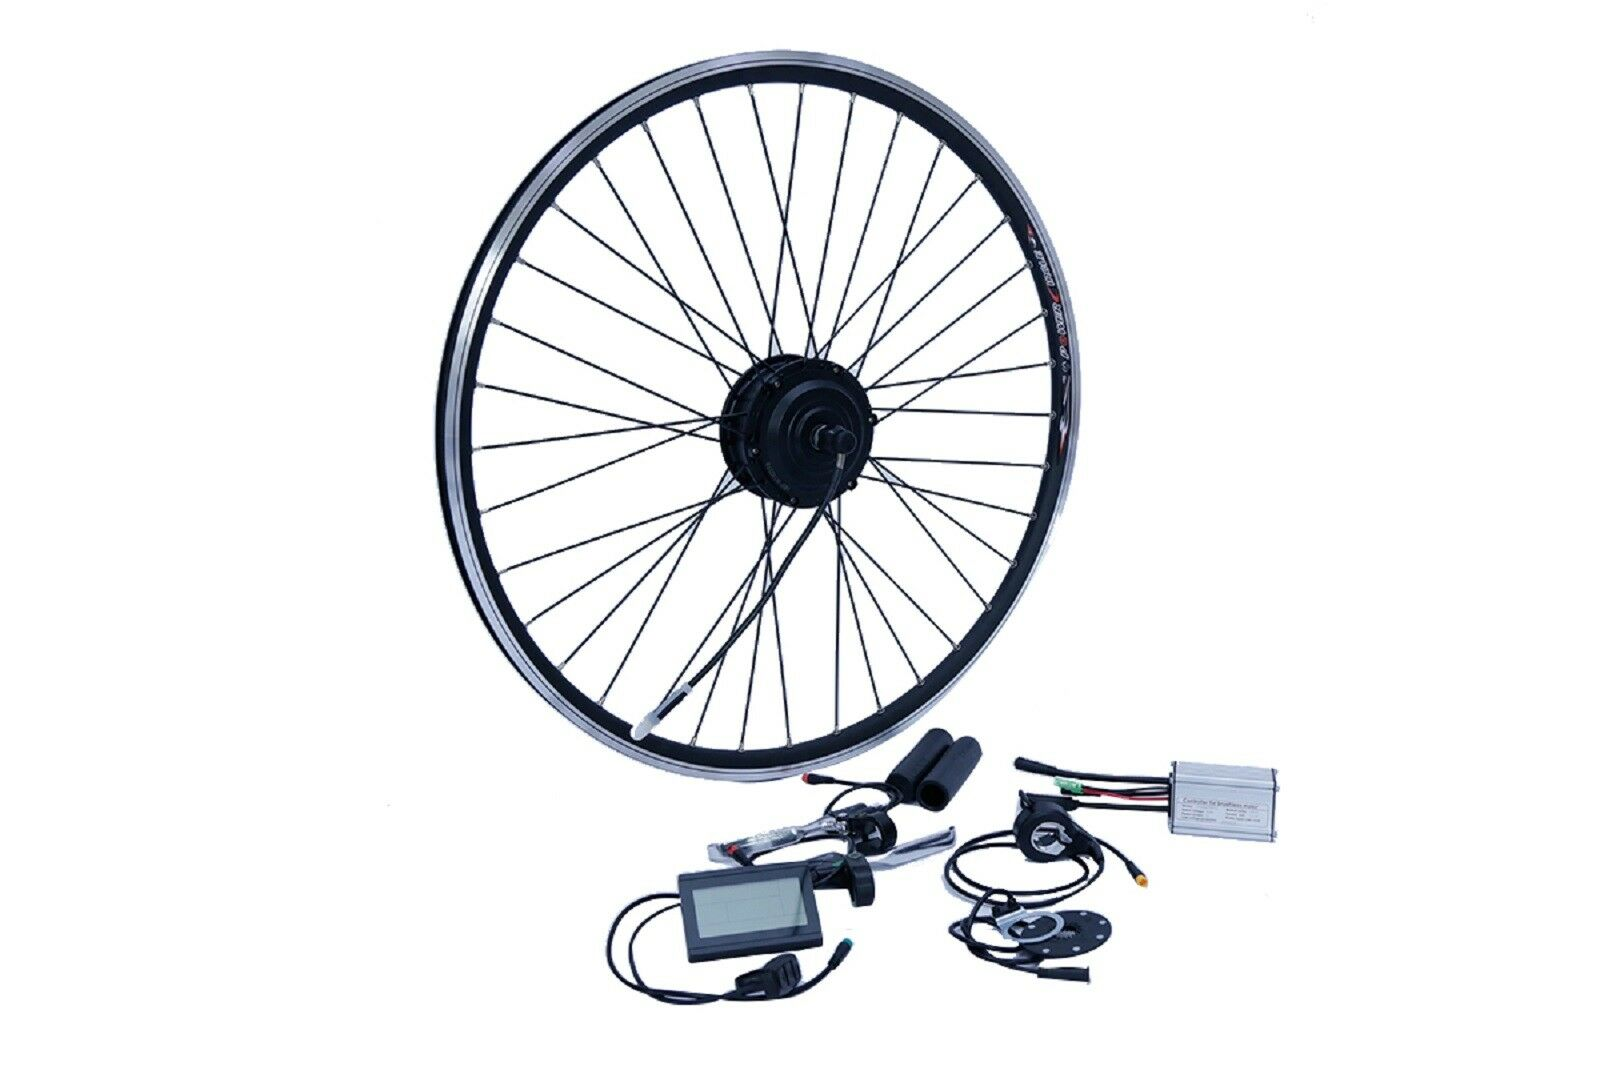 E-Bike Umbausatz 28  8 9 10 Hinterrad RWD  36V 250W Disc Wasserfest IP65 1-Kabel  online shopping sports